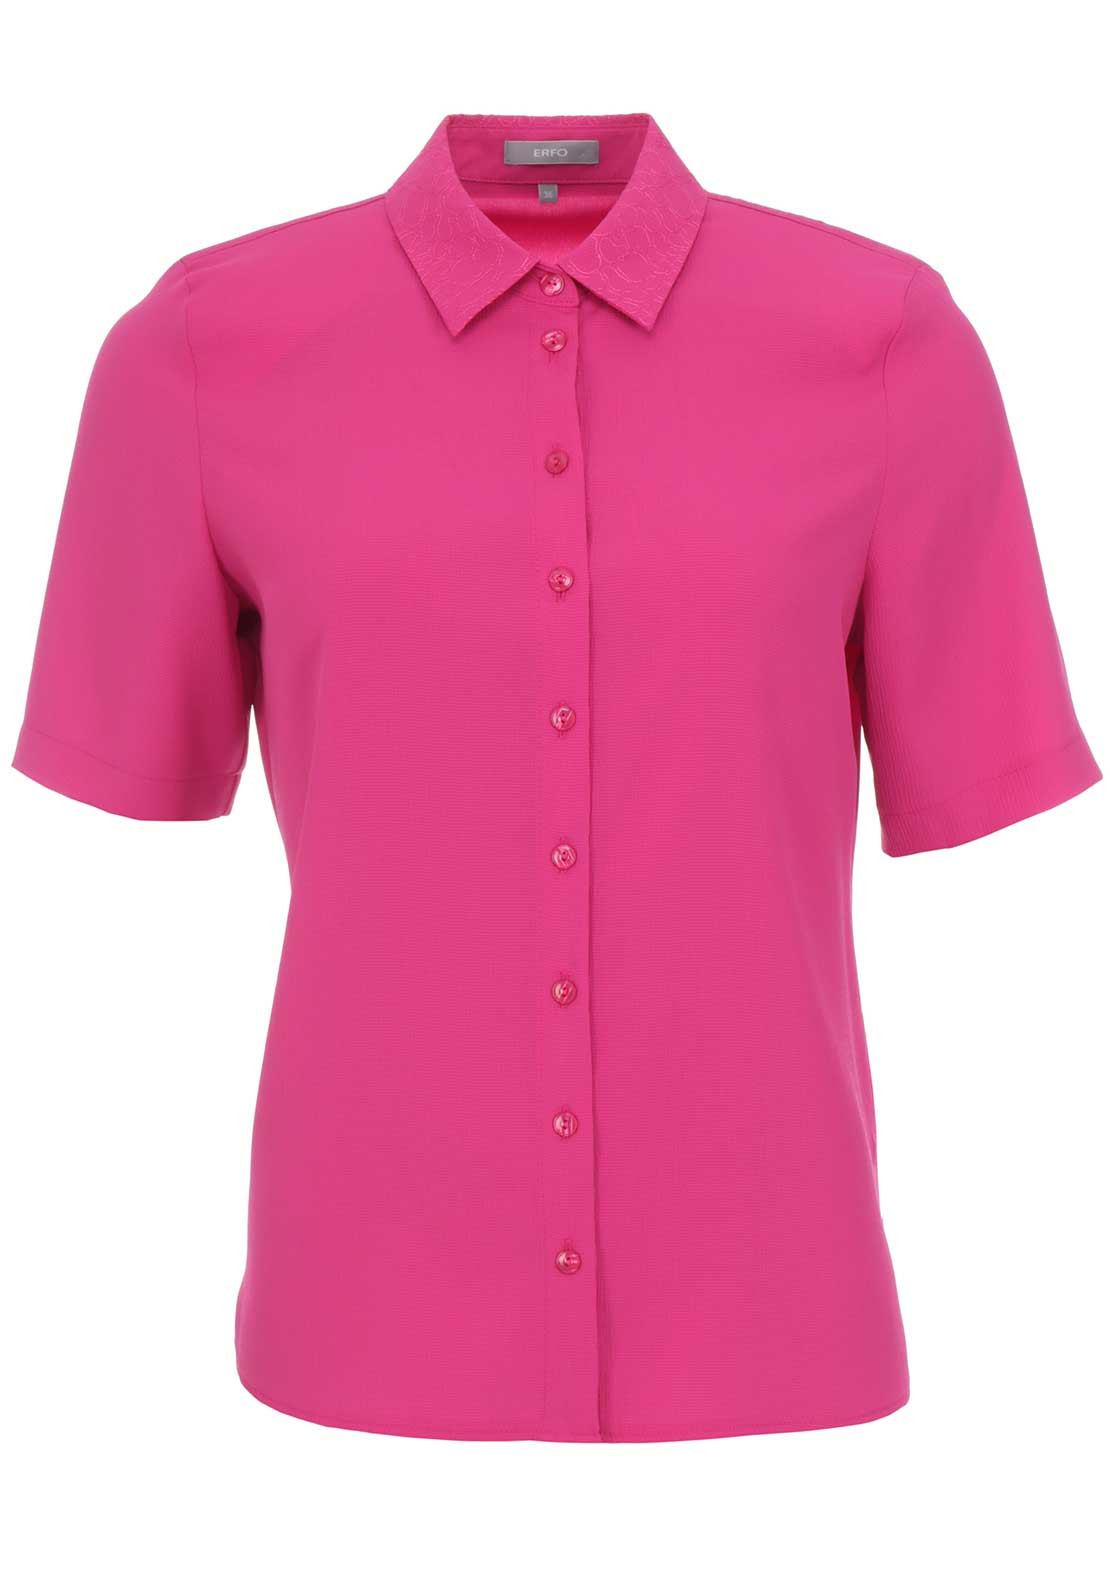 ERFO Embroidered Trim Short Sleeve Blouse, Fuschia Pink